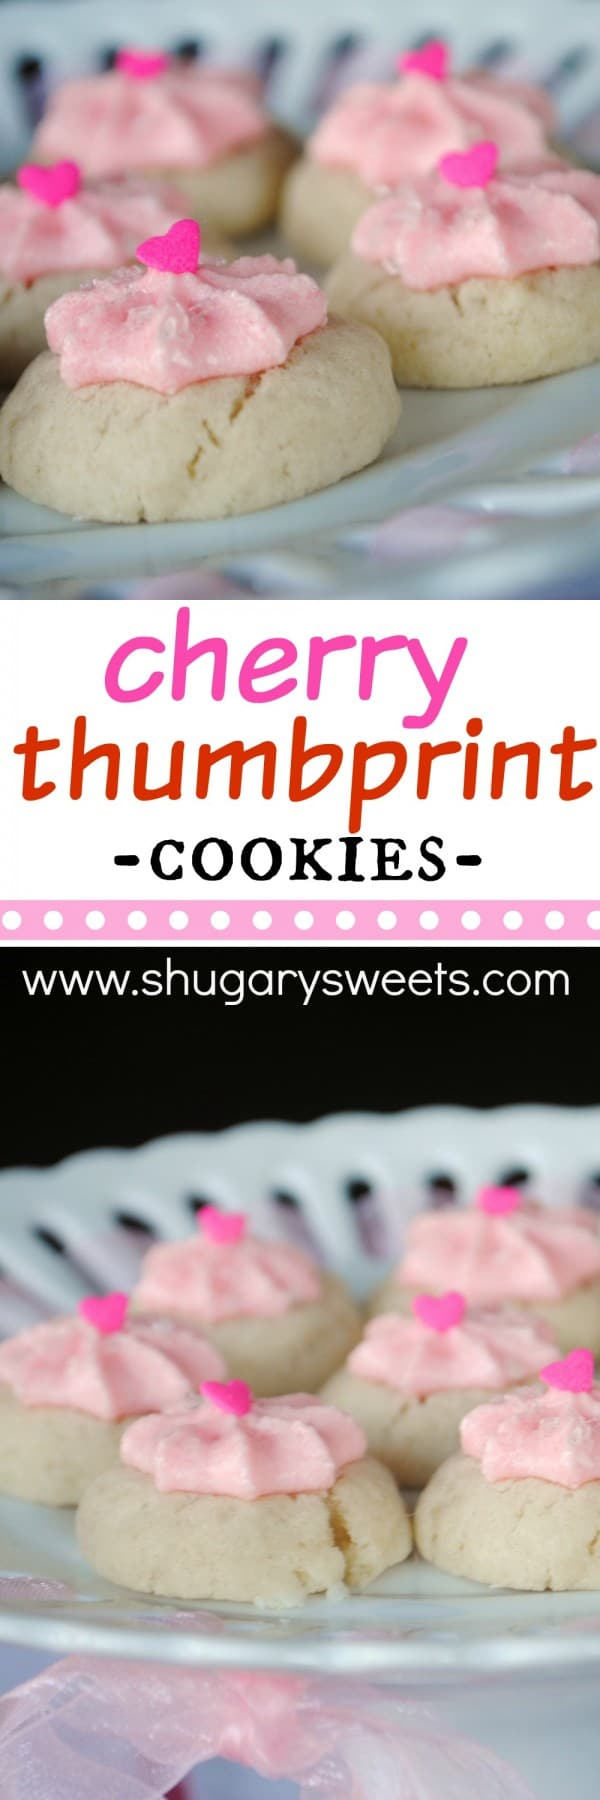 These delicious, delicate Thumbprint Cookies are topped with a sweet pink Cherry Buttercream Frosting!